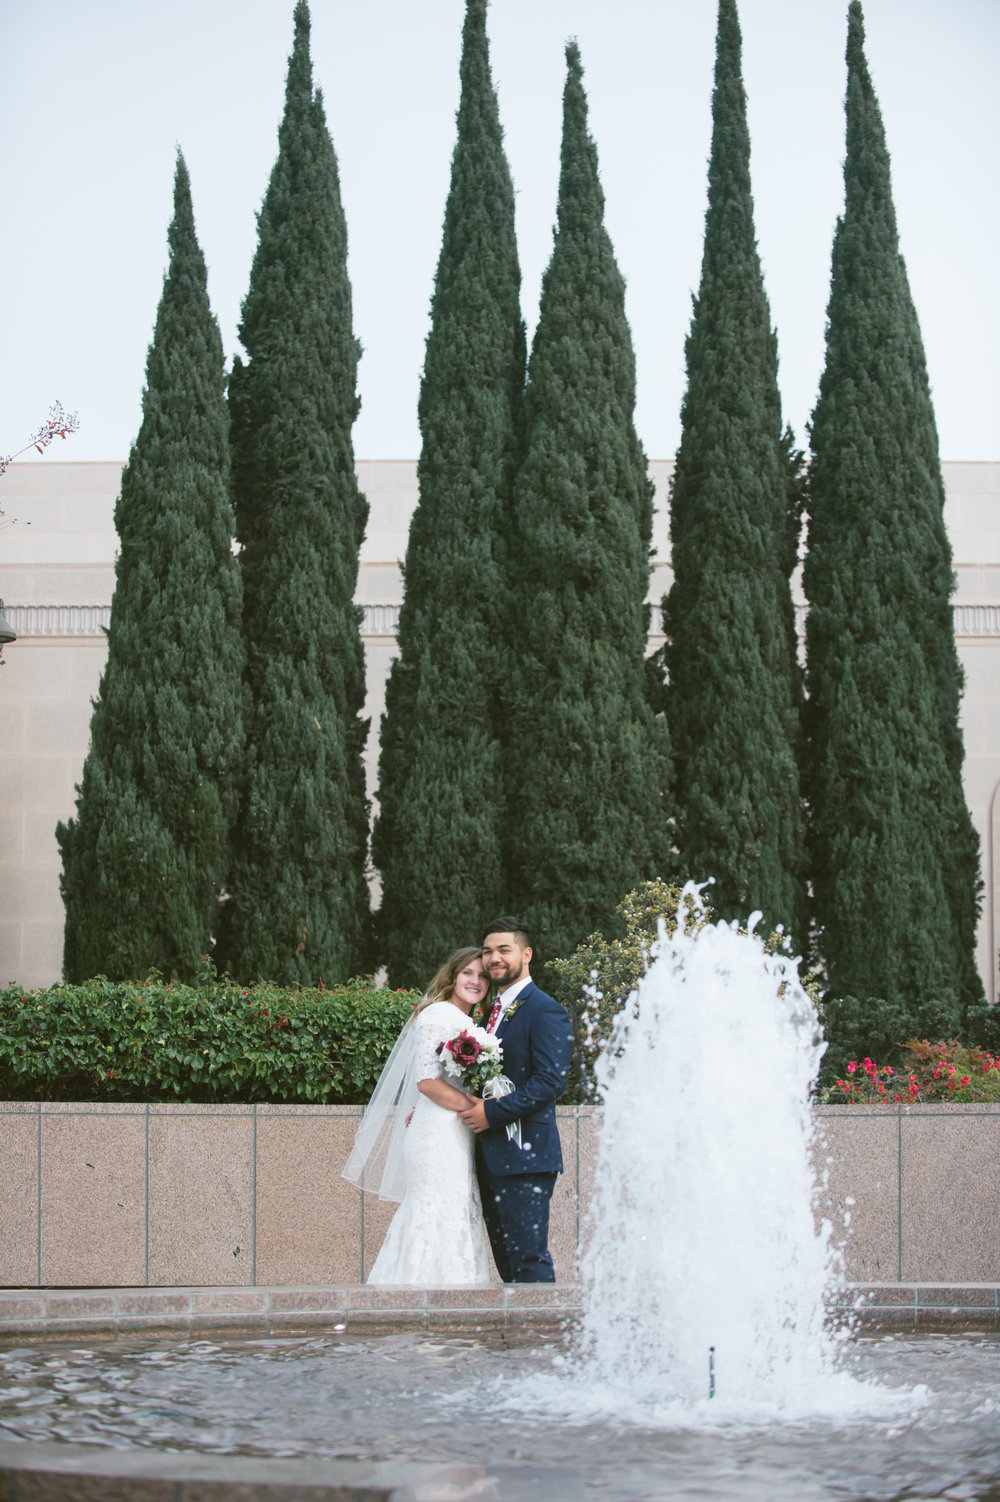 16Newport Beach LDS Temple Wedding Pictures.jpg